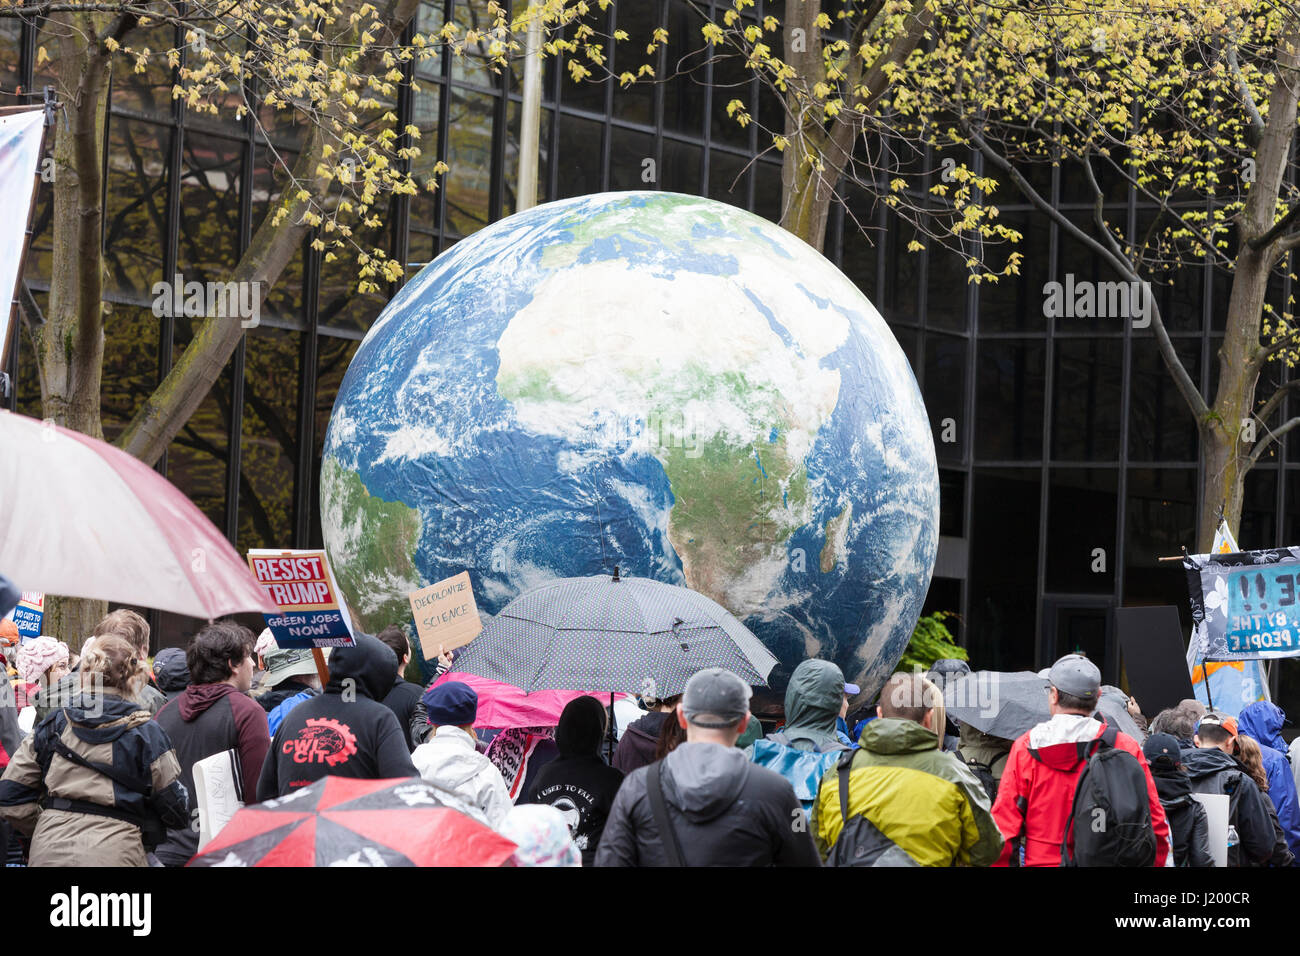 Seattle, Washington,USA. 22nd April, 2017. A large globe makes its way along 4th Avenue on its way to Seattle Center. - Stock Image